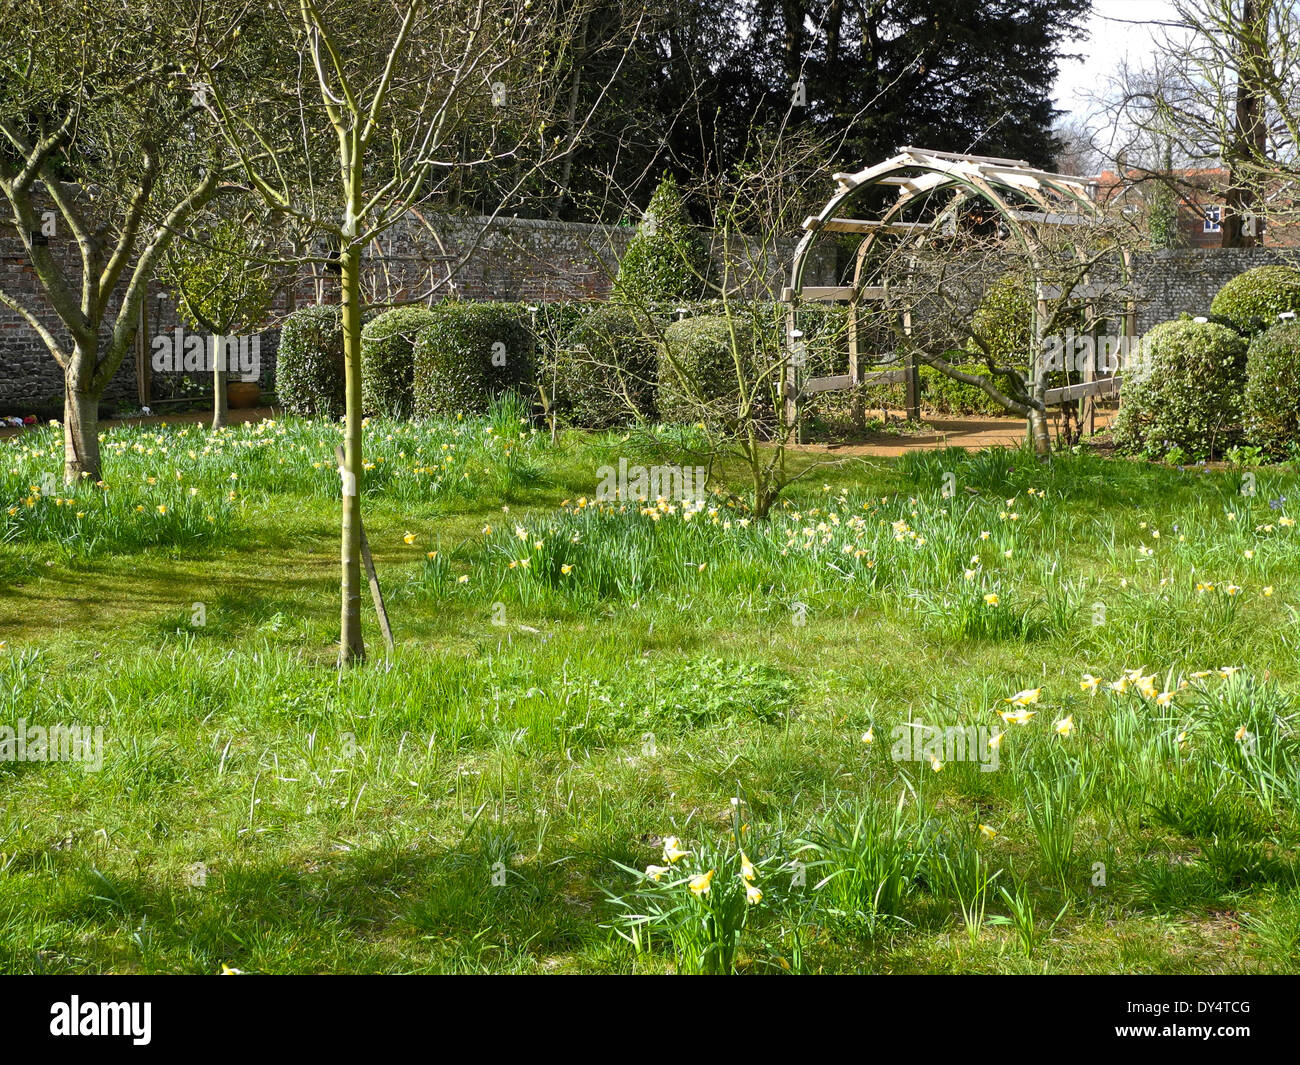 Petersfield Physic Gardens Garden in Petersfield, Hampshire contains a large collection of culinary and medicinal herb and plants. - Stock Image